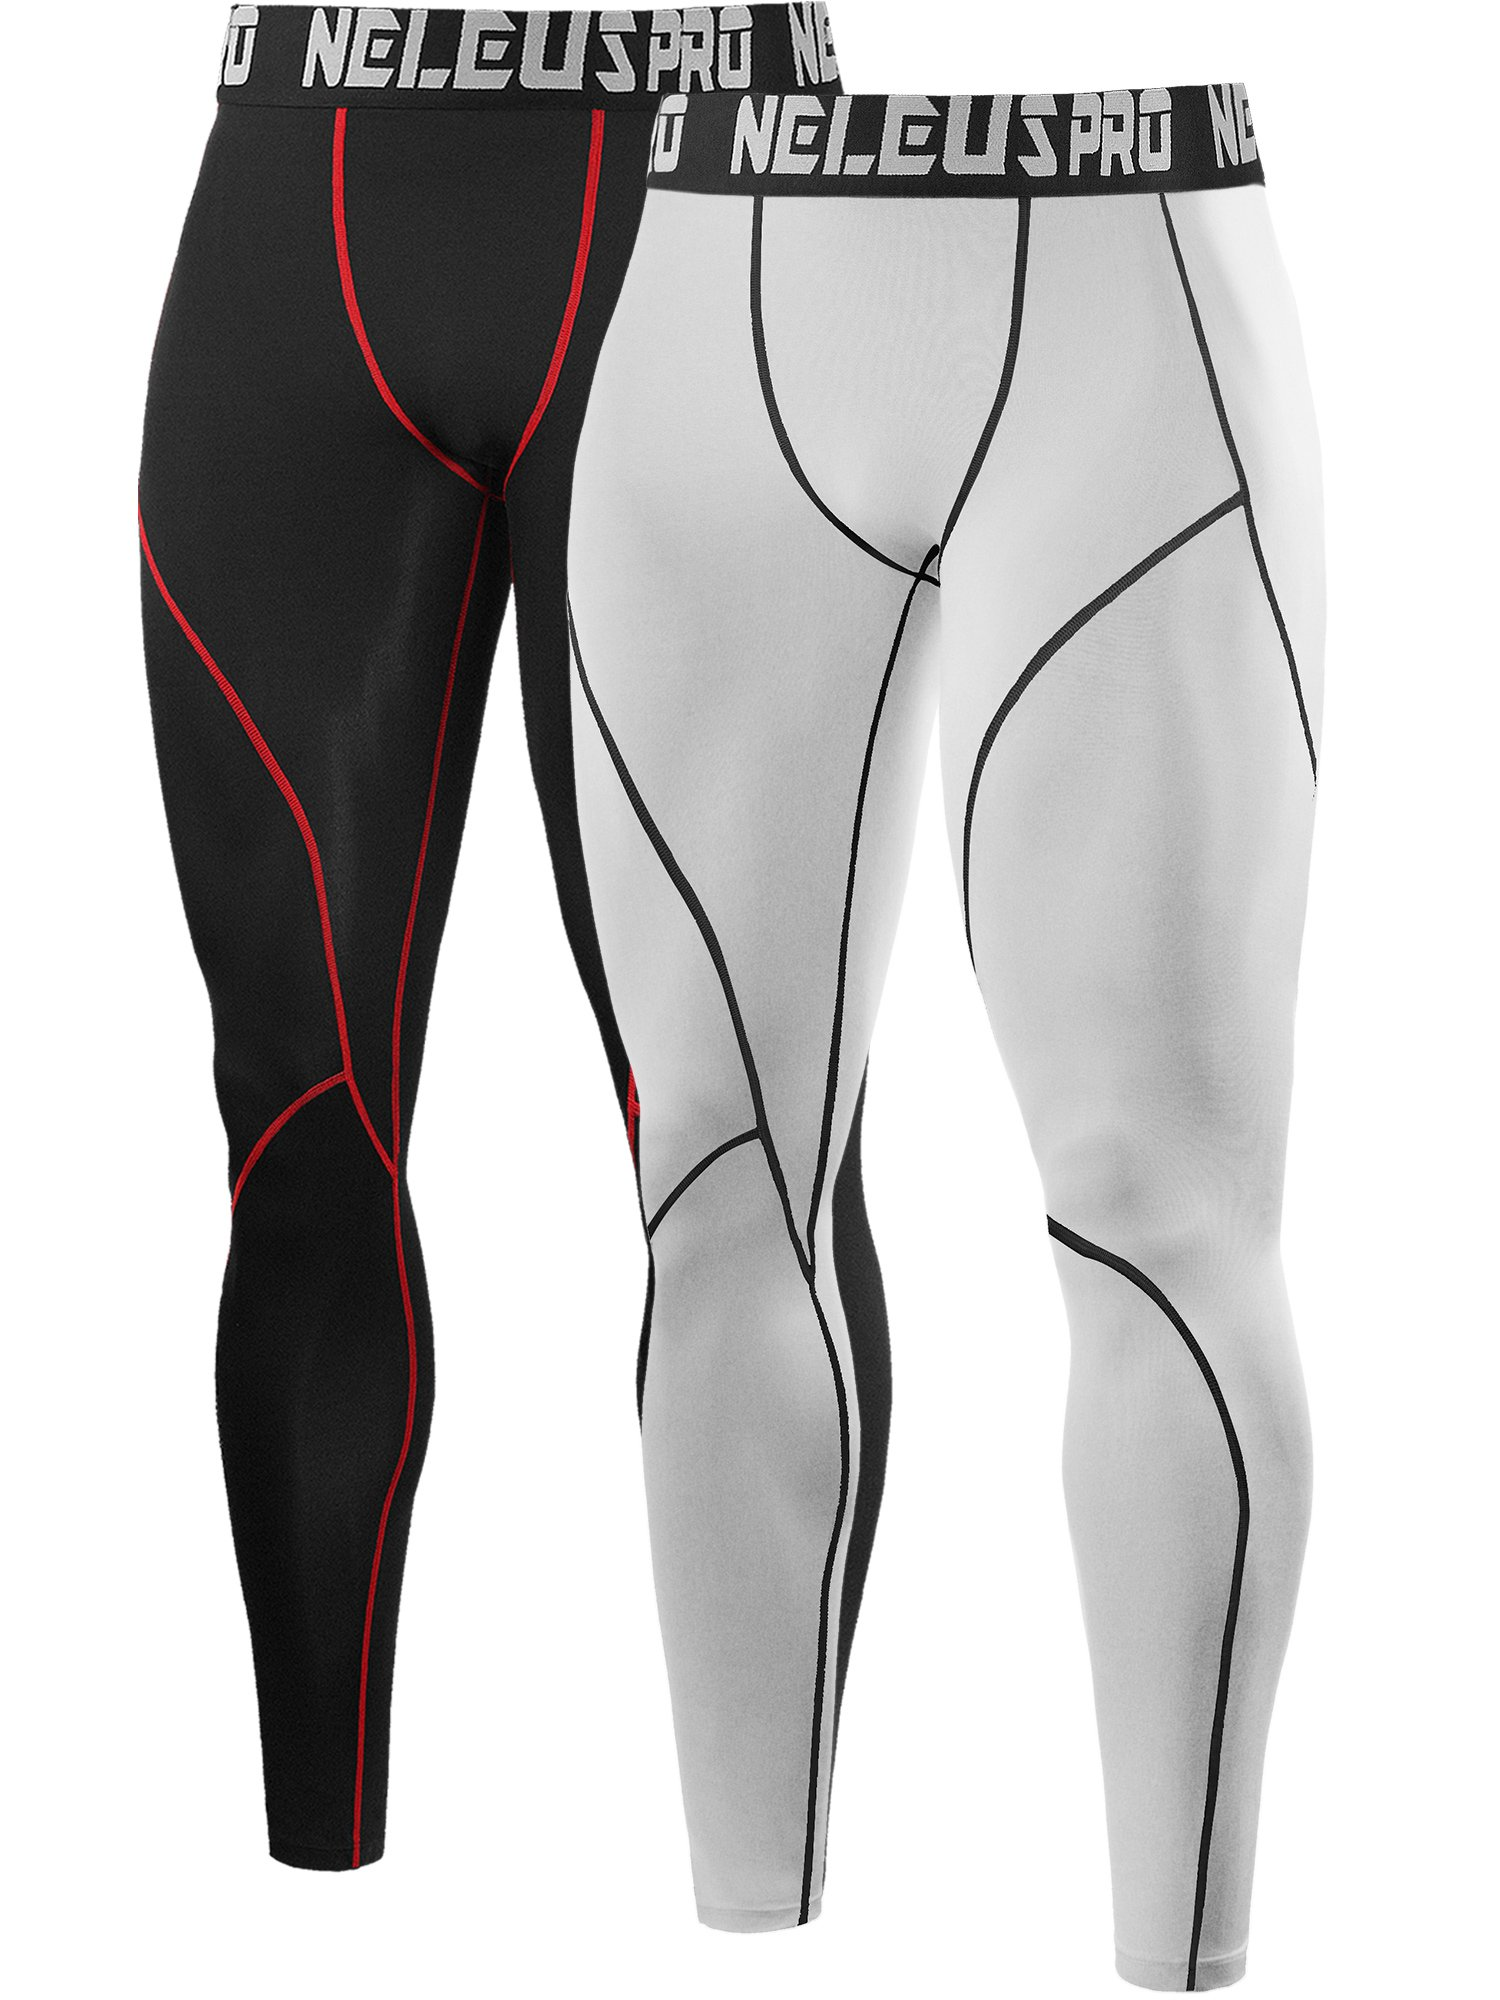 Neleus Men's 2 Pack Compression Base Layer Tight Pants,6013,Black (Red Stripe),White,US S,EU M